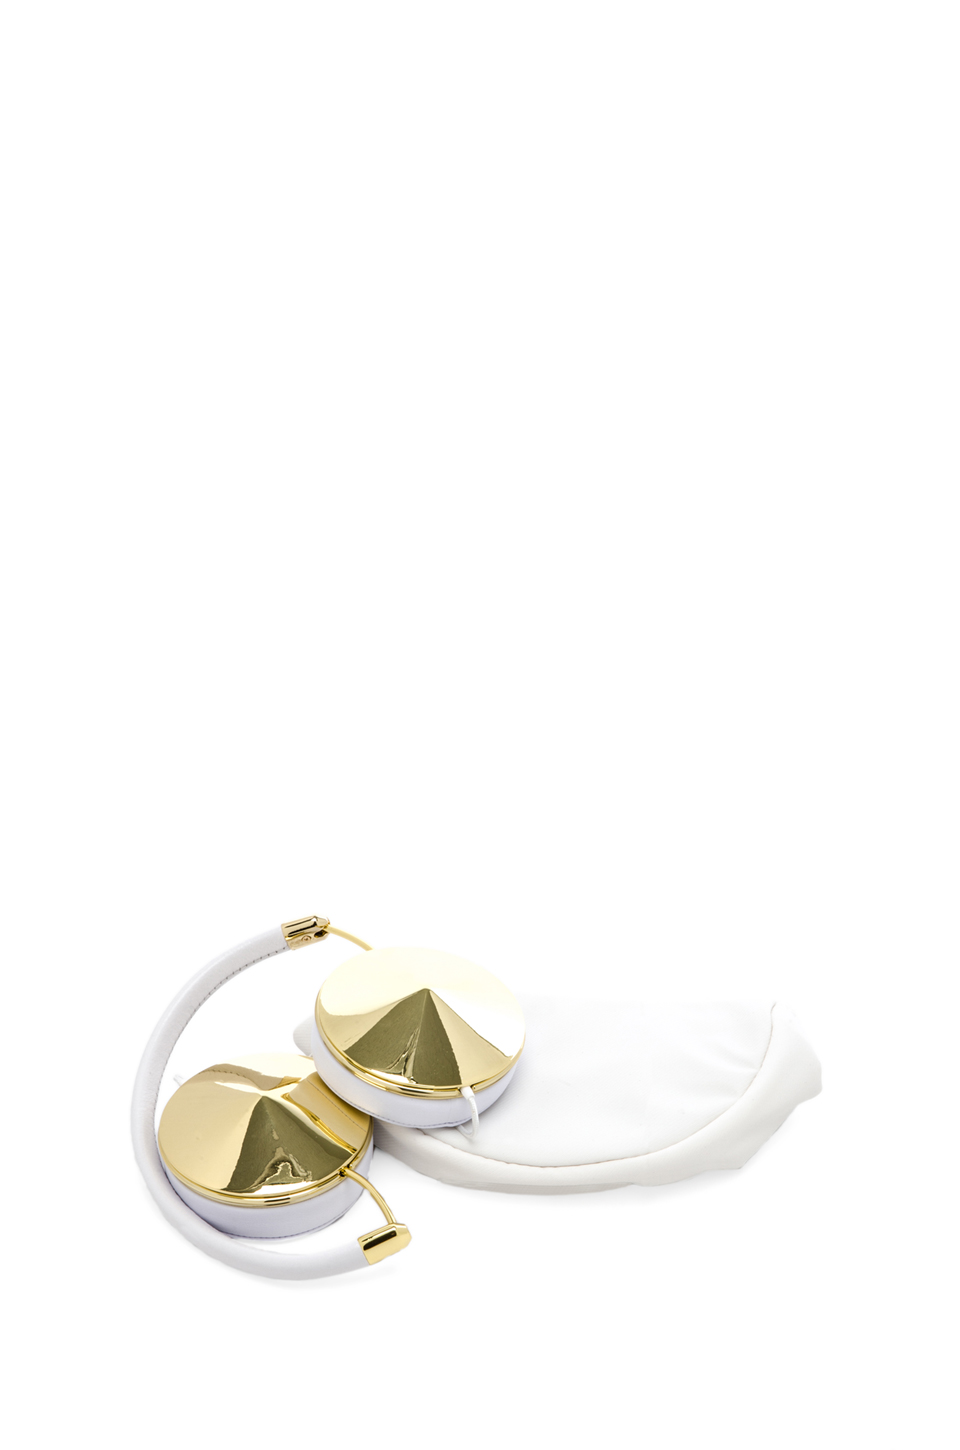 FRENDS Taylor Headphone in Gold & White